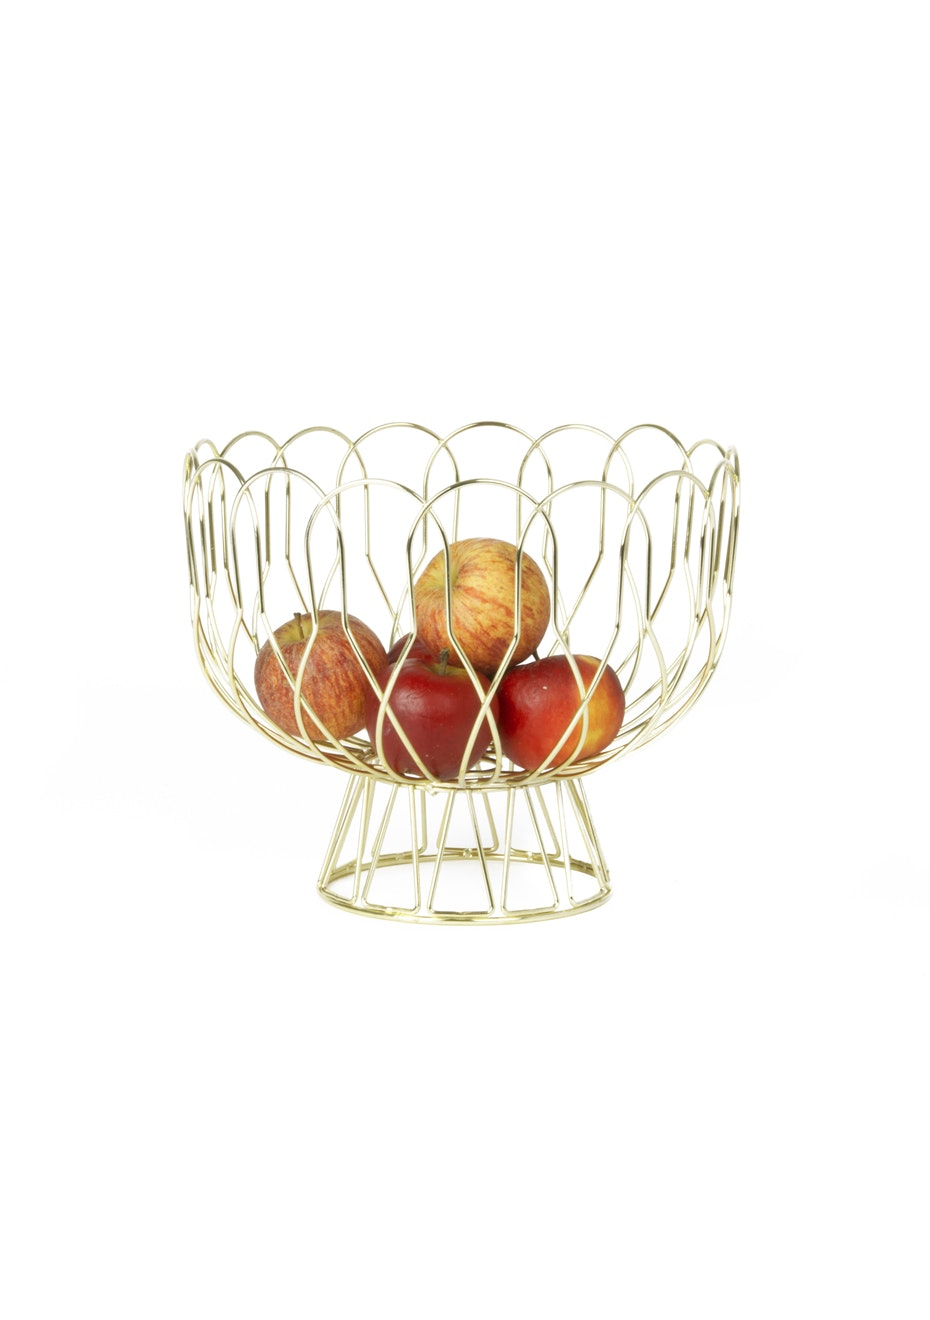 Pt Home - Fruit bowl Wired - Gold